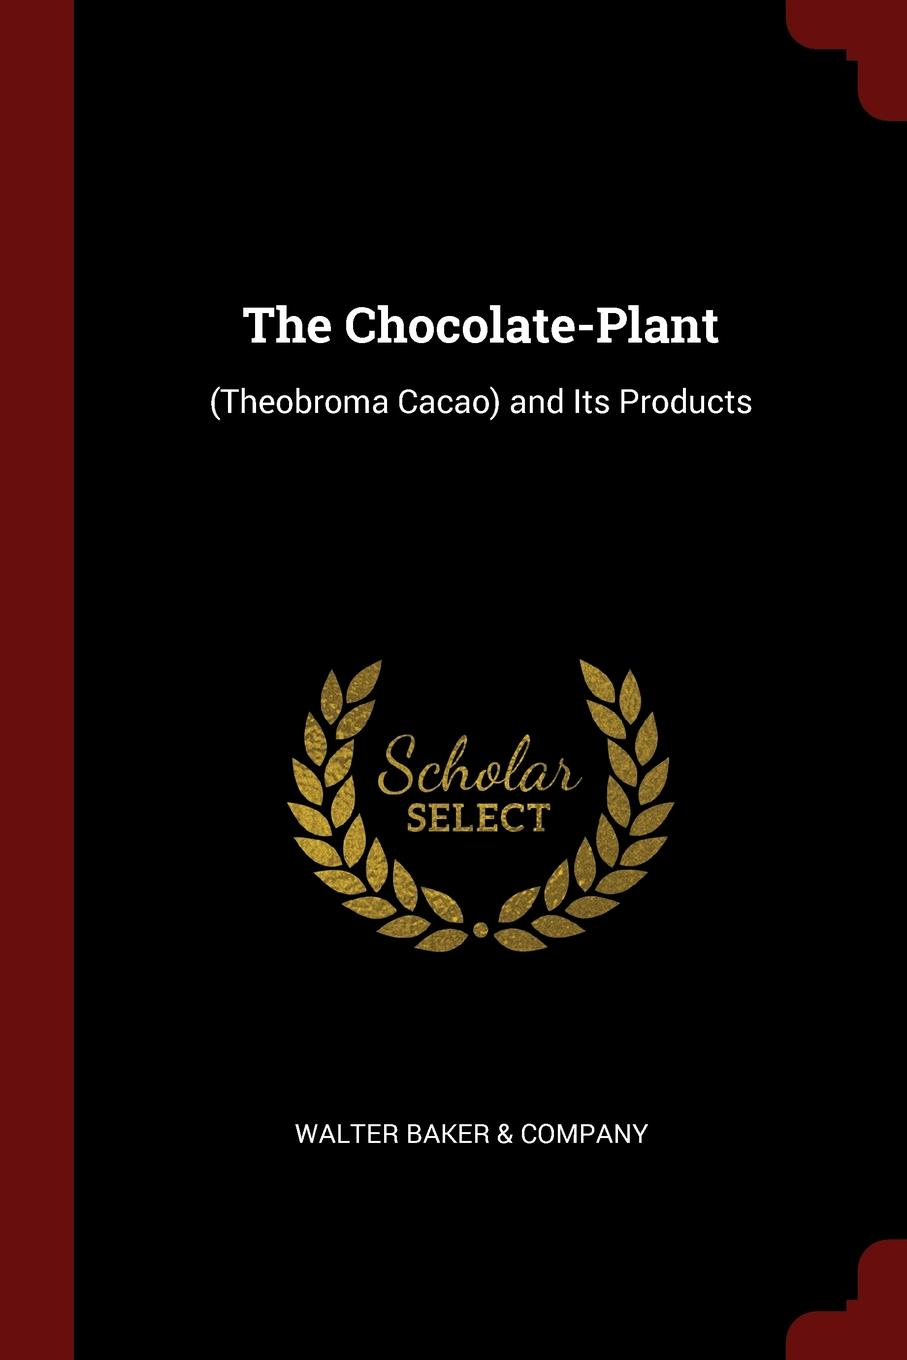 The Chocolate-Plant. (Theobroma Cacao) and Its Products